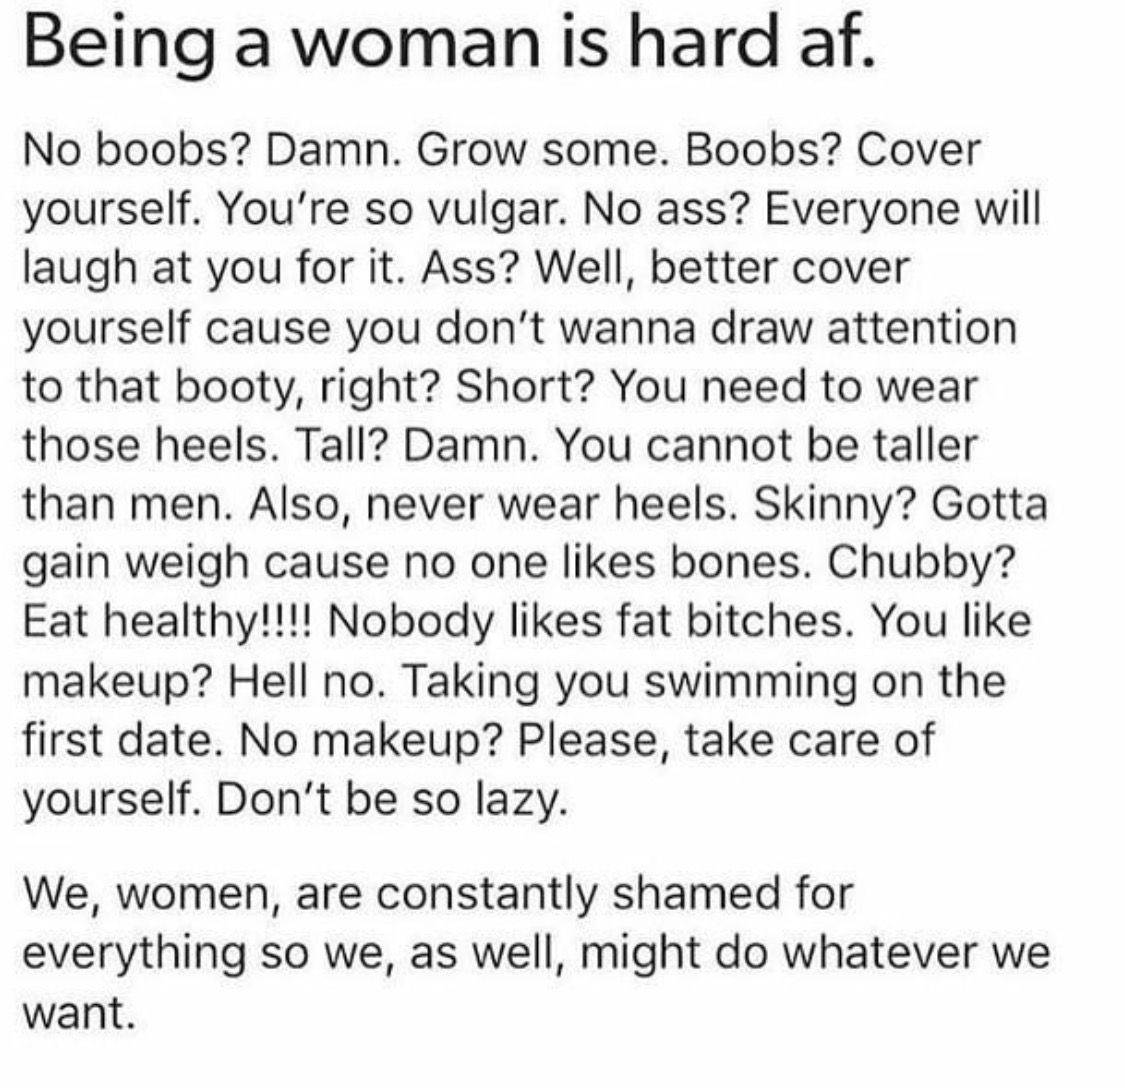 Do what you want, you'll be judged regardless. Let them judge, and remember someone else is judging them just as harshly.